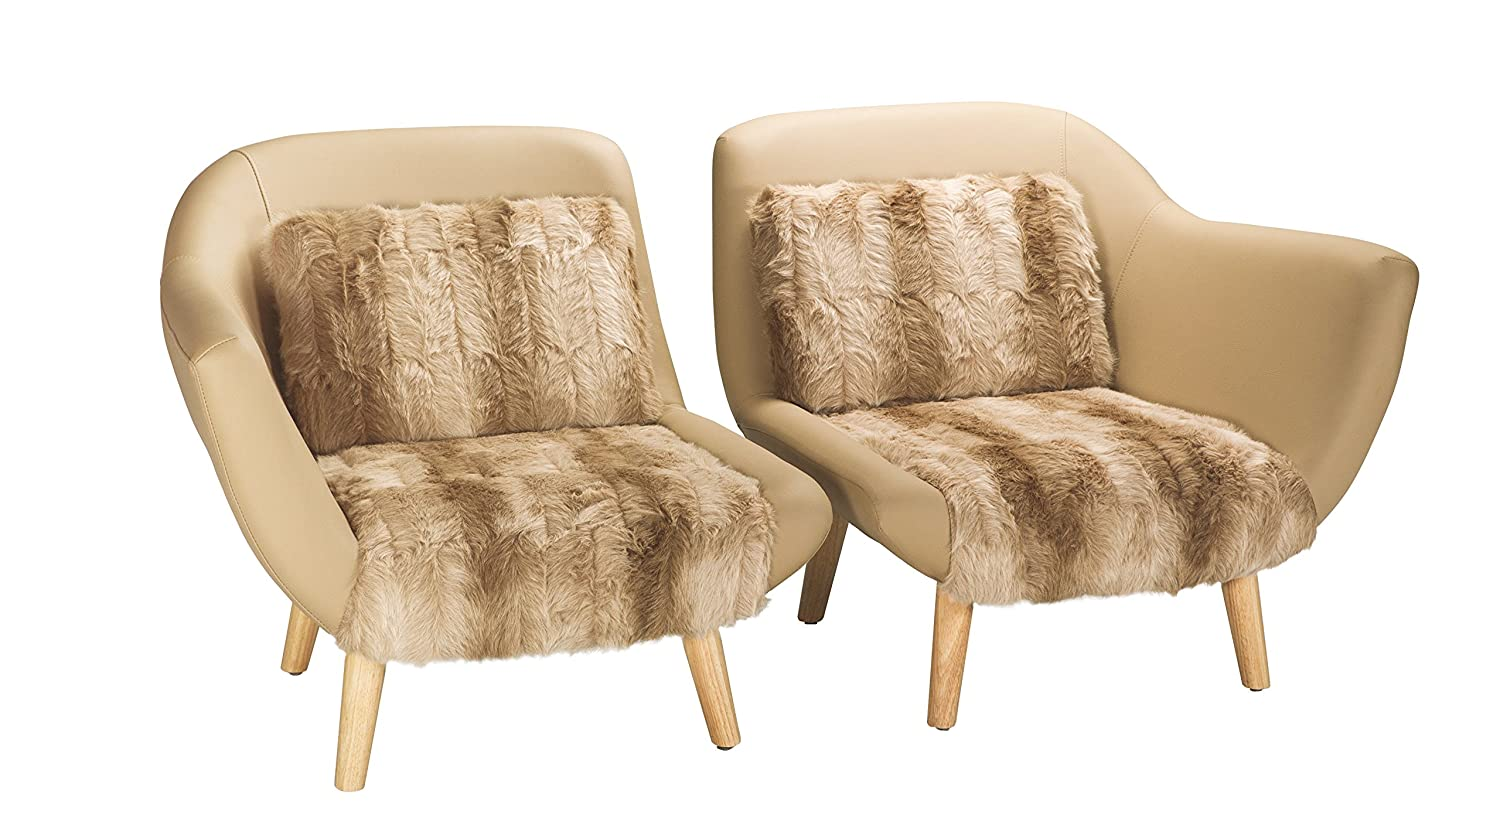 Pirouette - Juego de Dos sillones Lovers, Madera, Beige, 142 ...